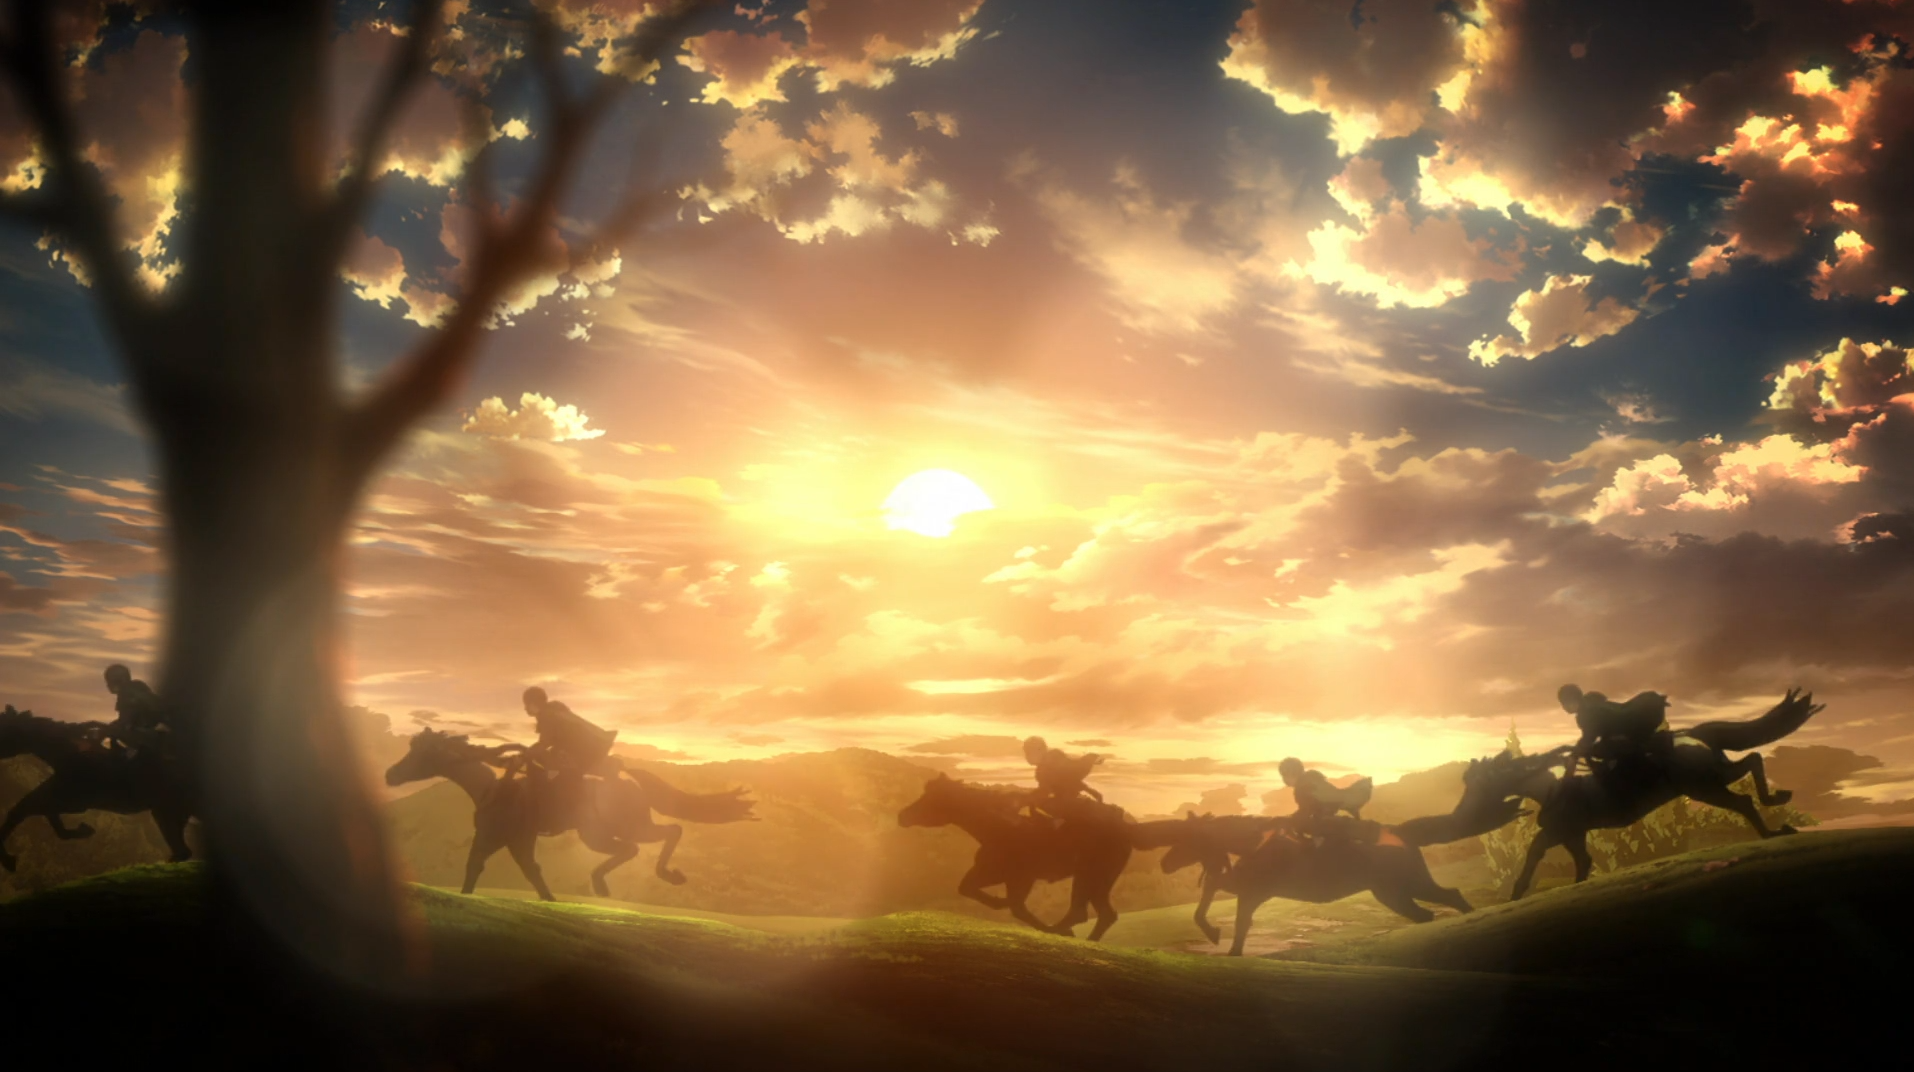 Anime Attack On Titan Sunset Scouting Legion Shingeki No Kyojin Wallpaper Attack On Titan Attack On Titan Anime Attack On Titan Aesthetic